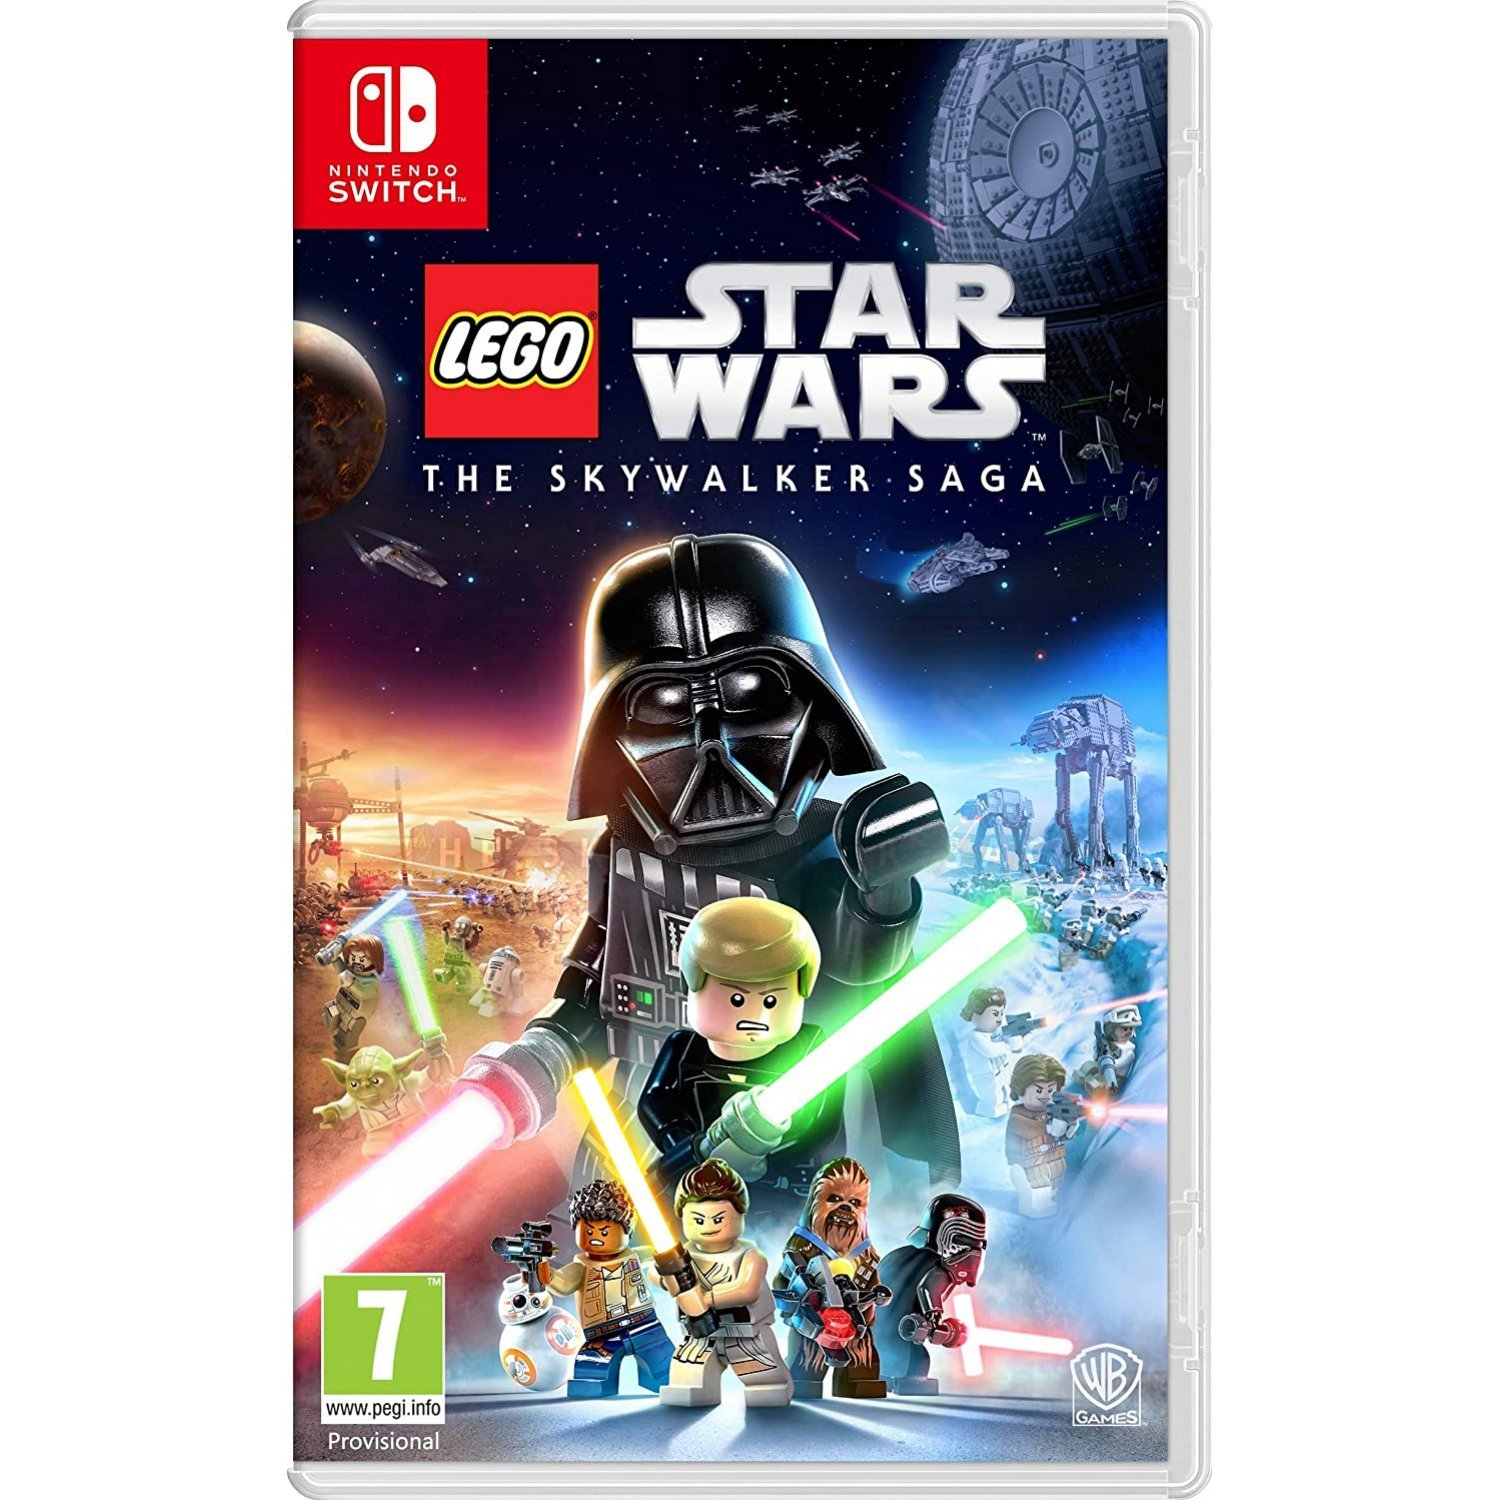 Nintendo Switch - The full set - Page 5 Lego-star-wars-the-skywalker-saga-597041.8